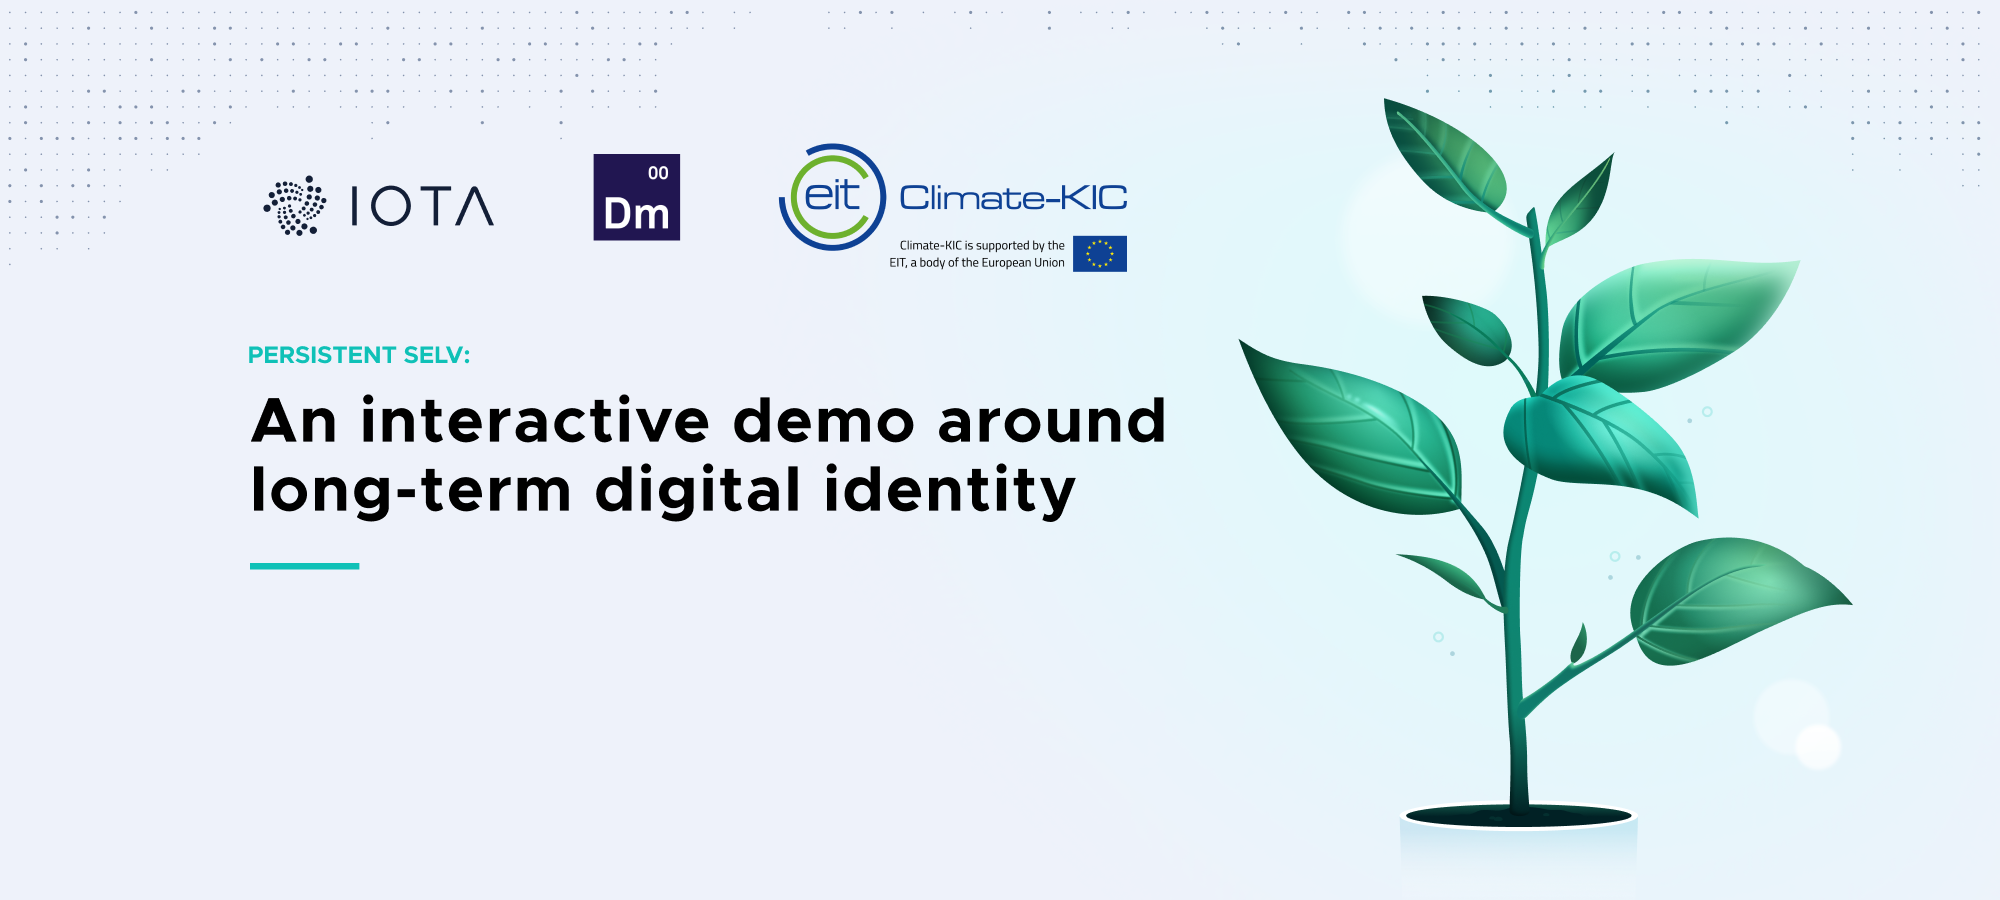 Persistent Selv: An interactive demo around long-term digital identity